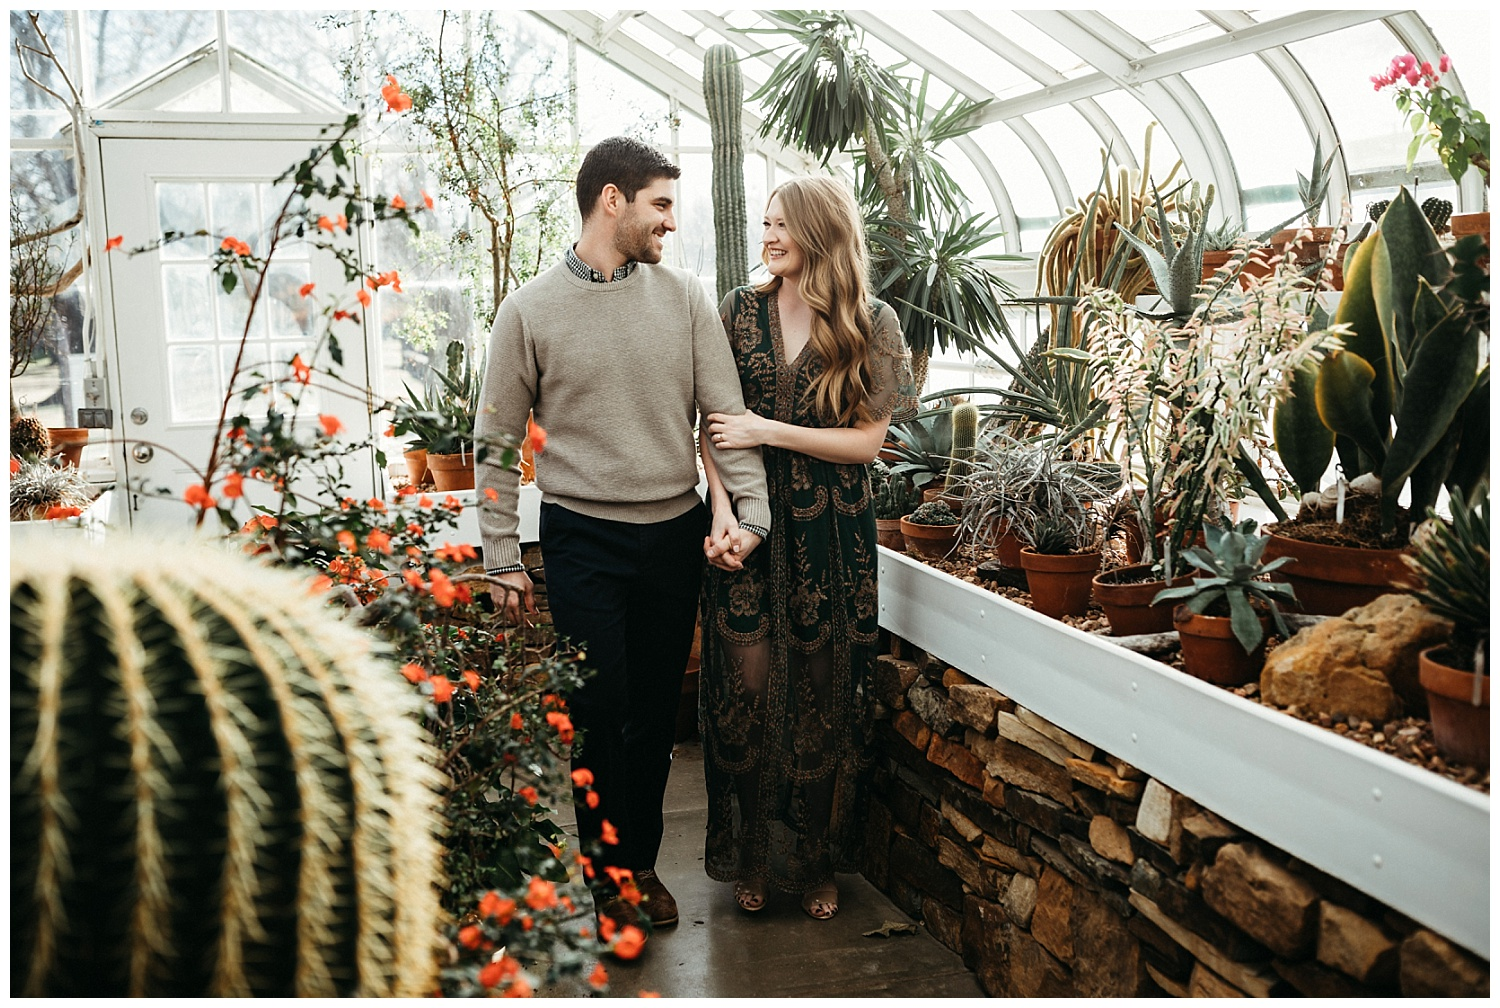 Beautiful couple walking through the cactus plants at the conservatory greenhouse in Tulsa, OK.